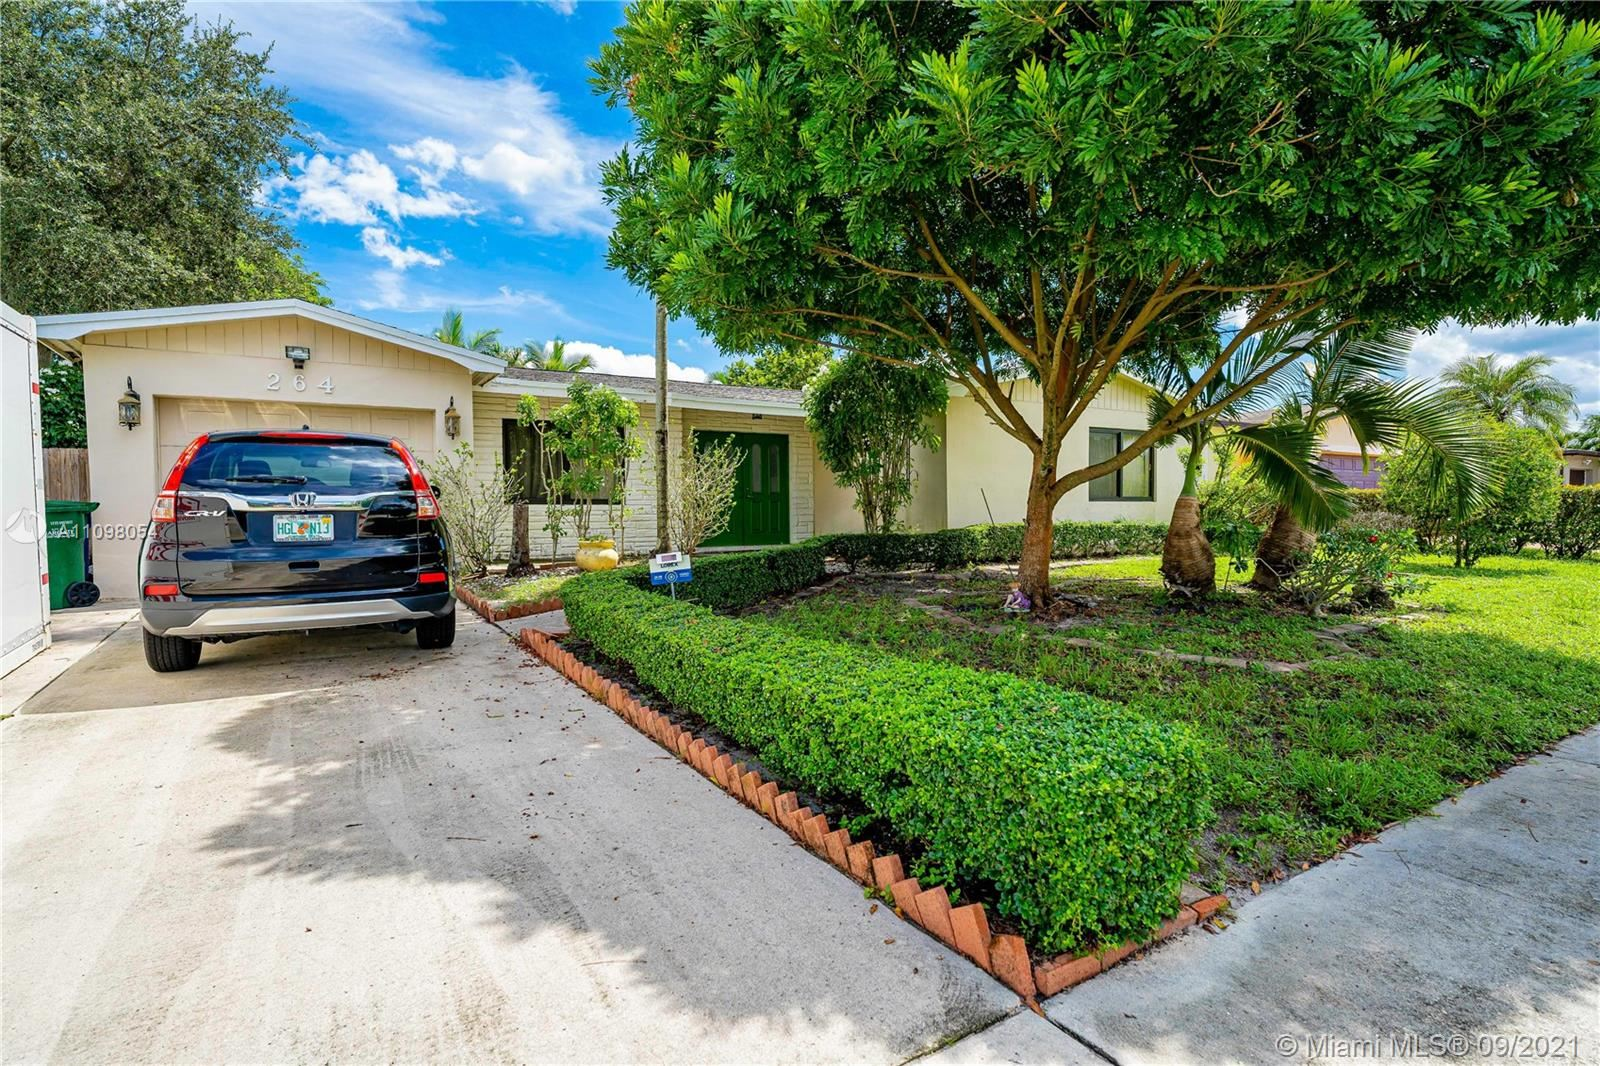 264 NW 79th Ave, Margate, FL 33063 - #: A11098054